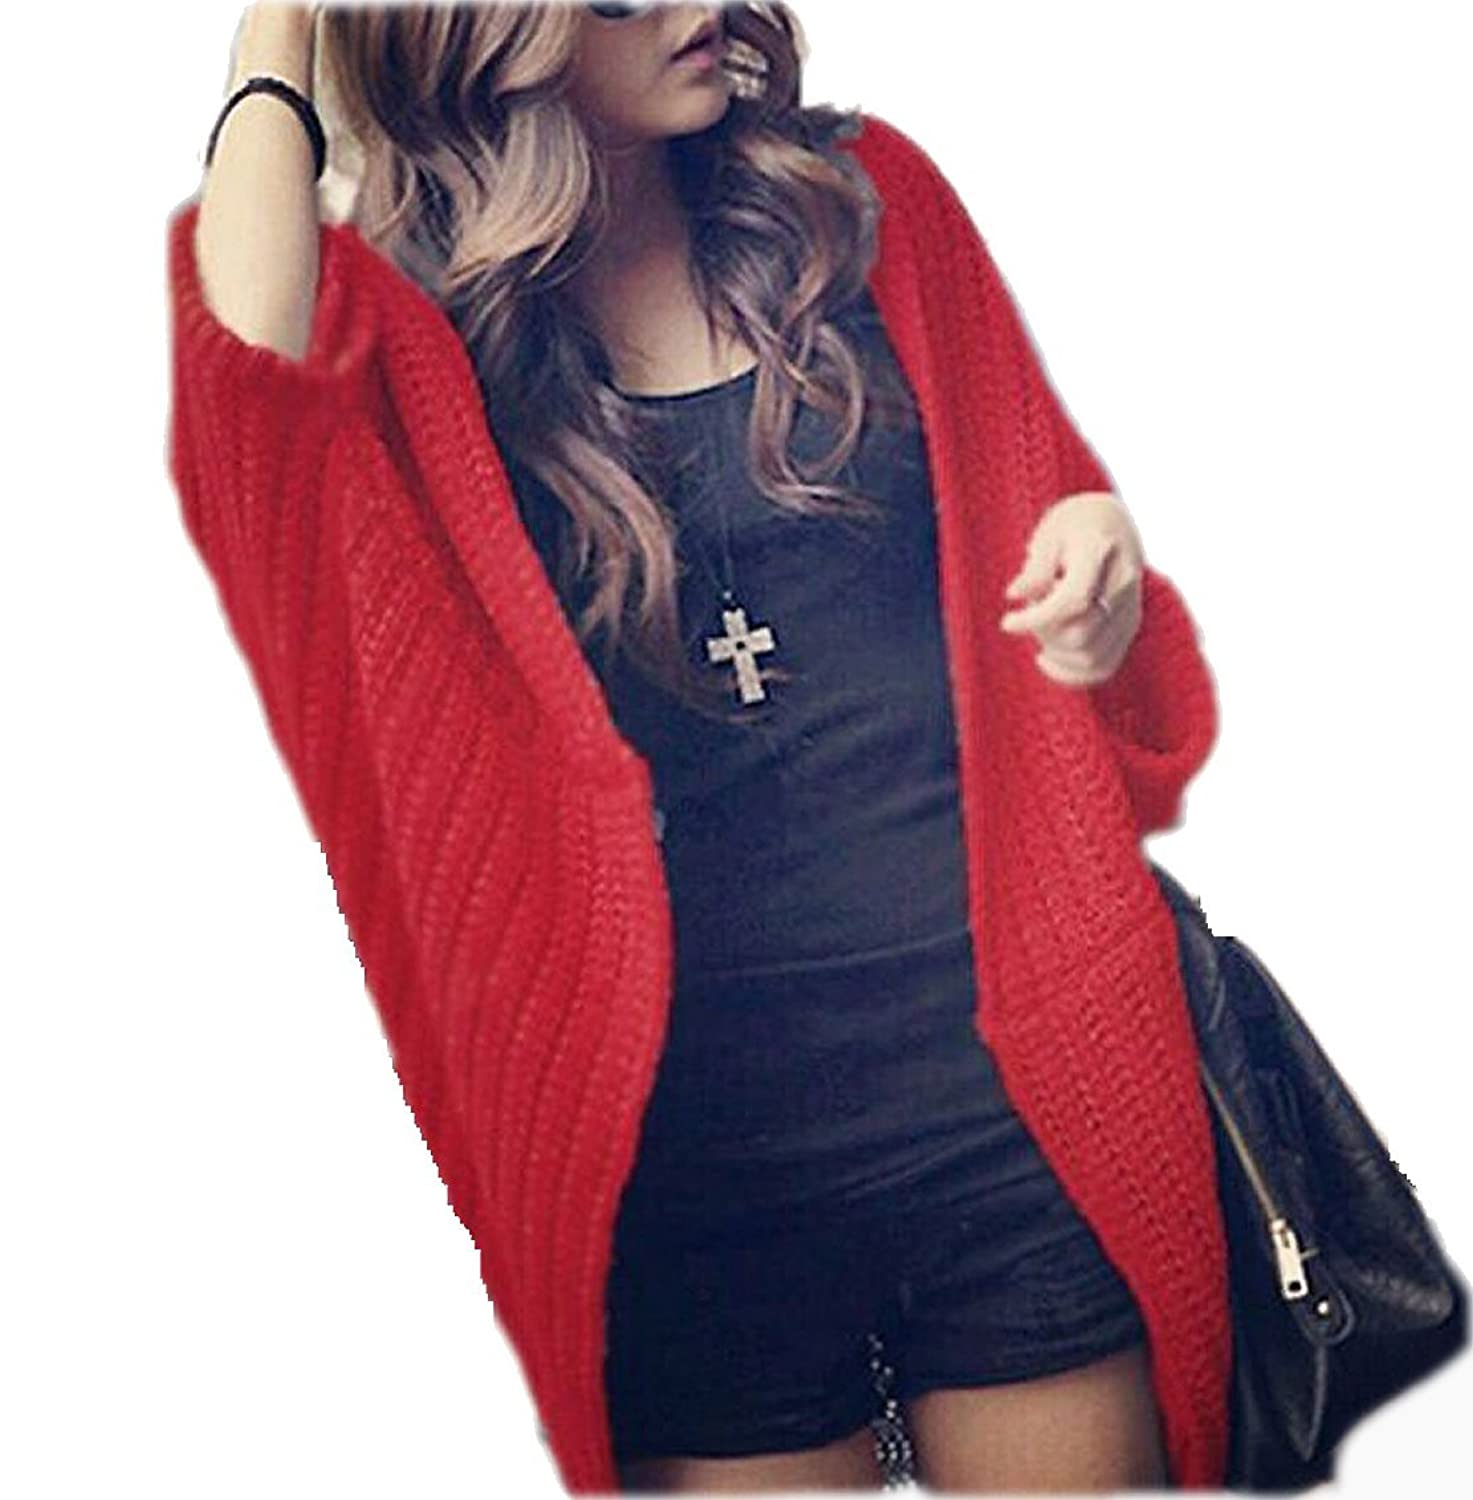 Tammy Open Front Shrug Cardi - Red Fits US Size 4 - 6 (Item# 40015R)